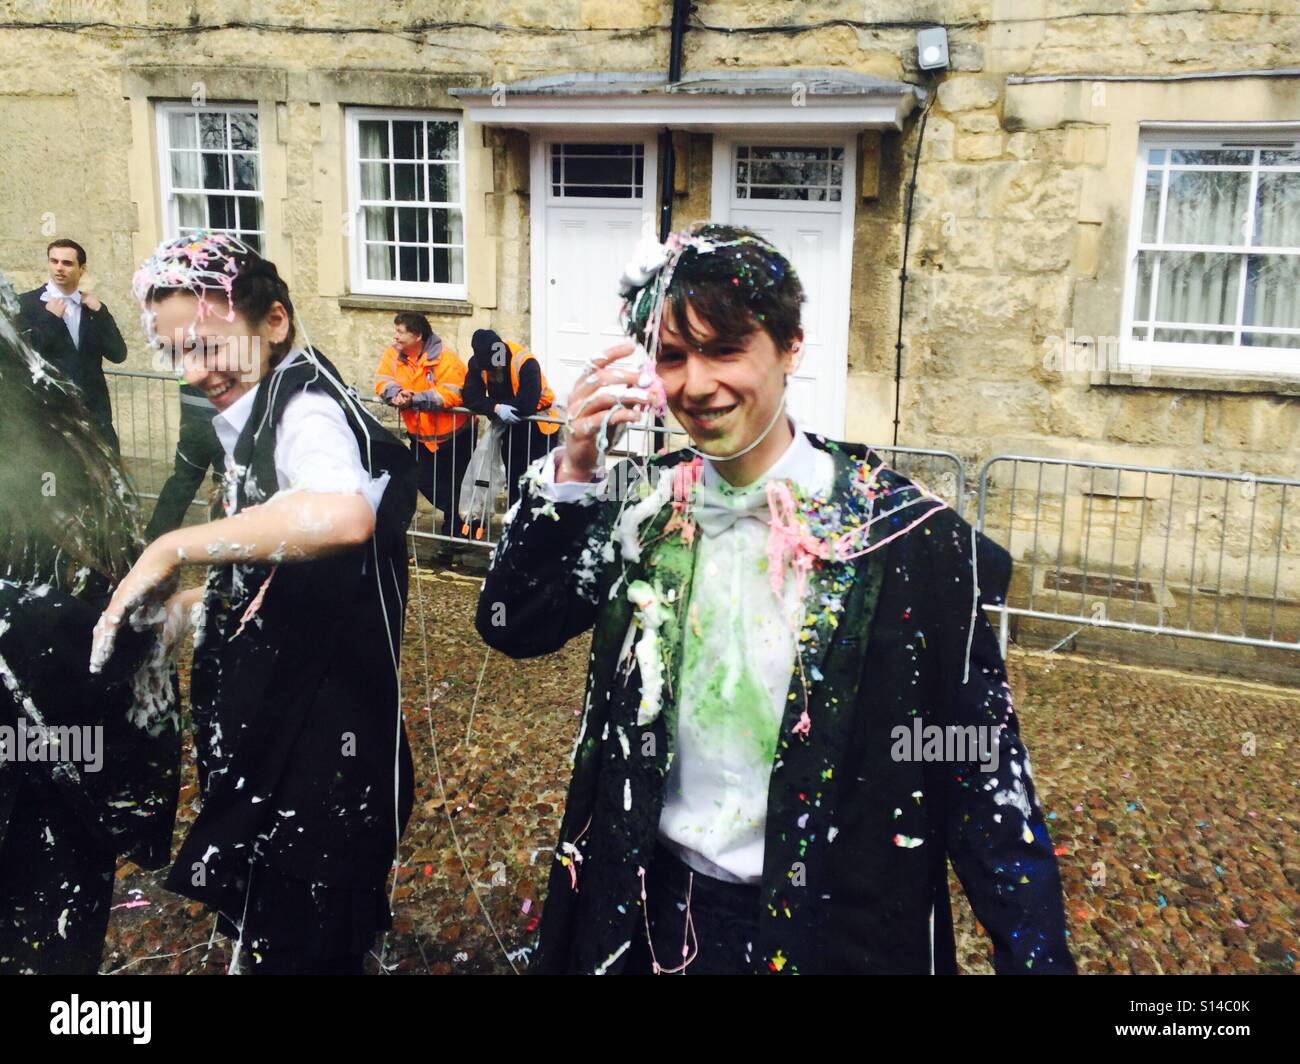 A student is covered in powder paint, silly string, confetti and champagne as he finishes his exams at the University - Stock Image